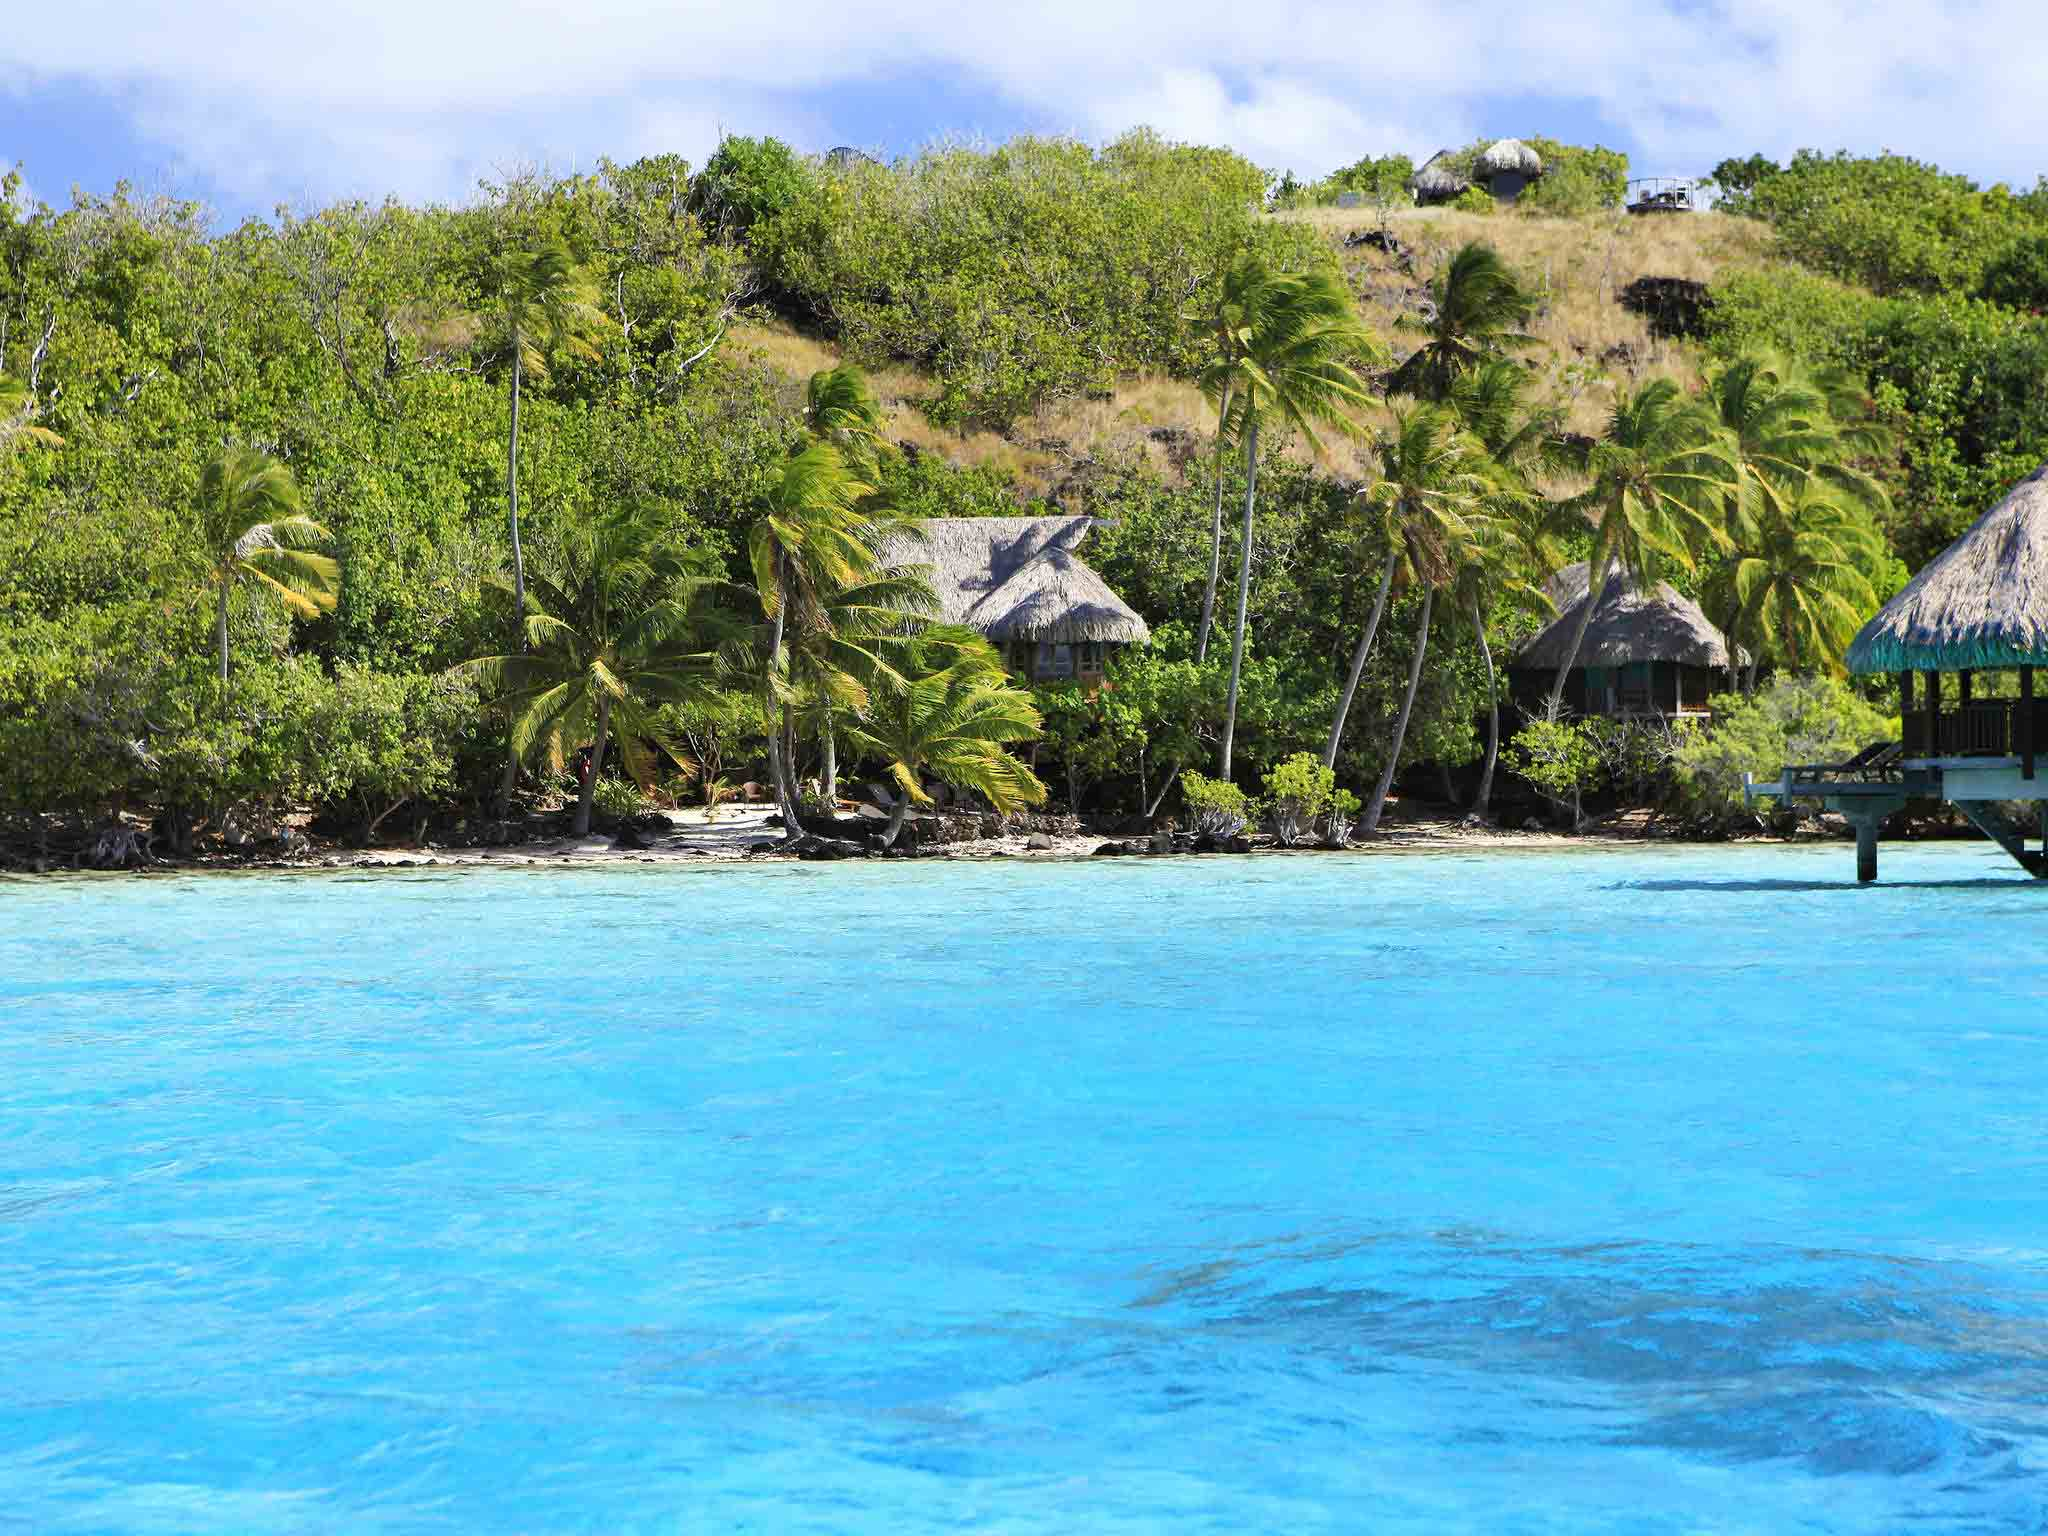 french polynesia the island of love Cruising french polynesia is as romantic as it gets and often the most affordable way to visit these luscious islands blooming with hibiscus.